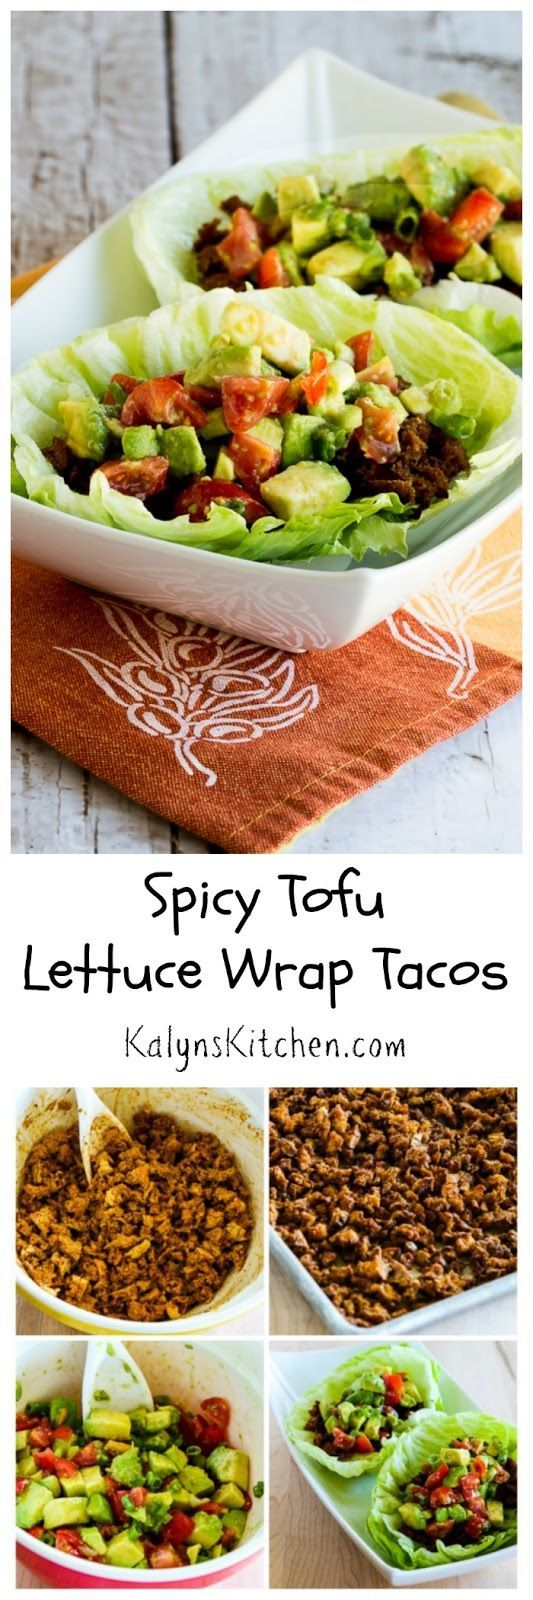 Crumbled tofu is baked with spices to become the filling in these Spicy Tofu Lettuce Wrap Tacos that are low-carb, vegan, and gluten-free; ...